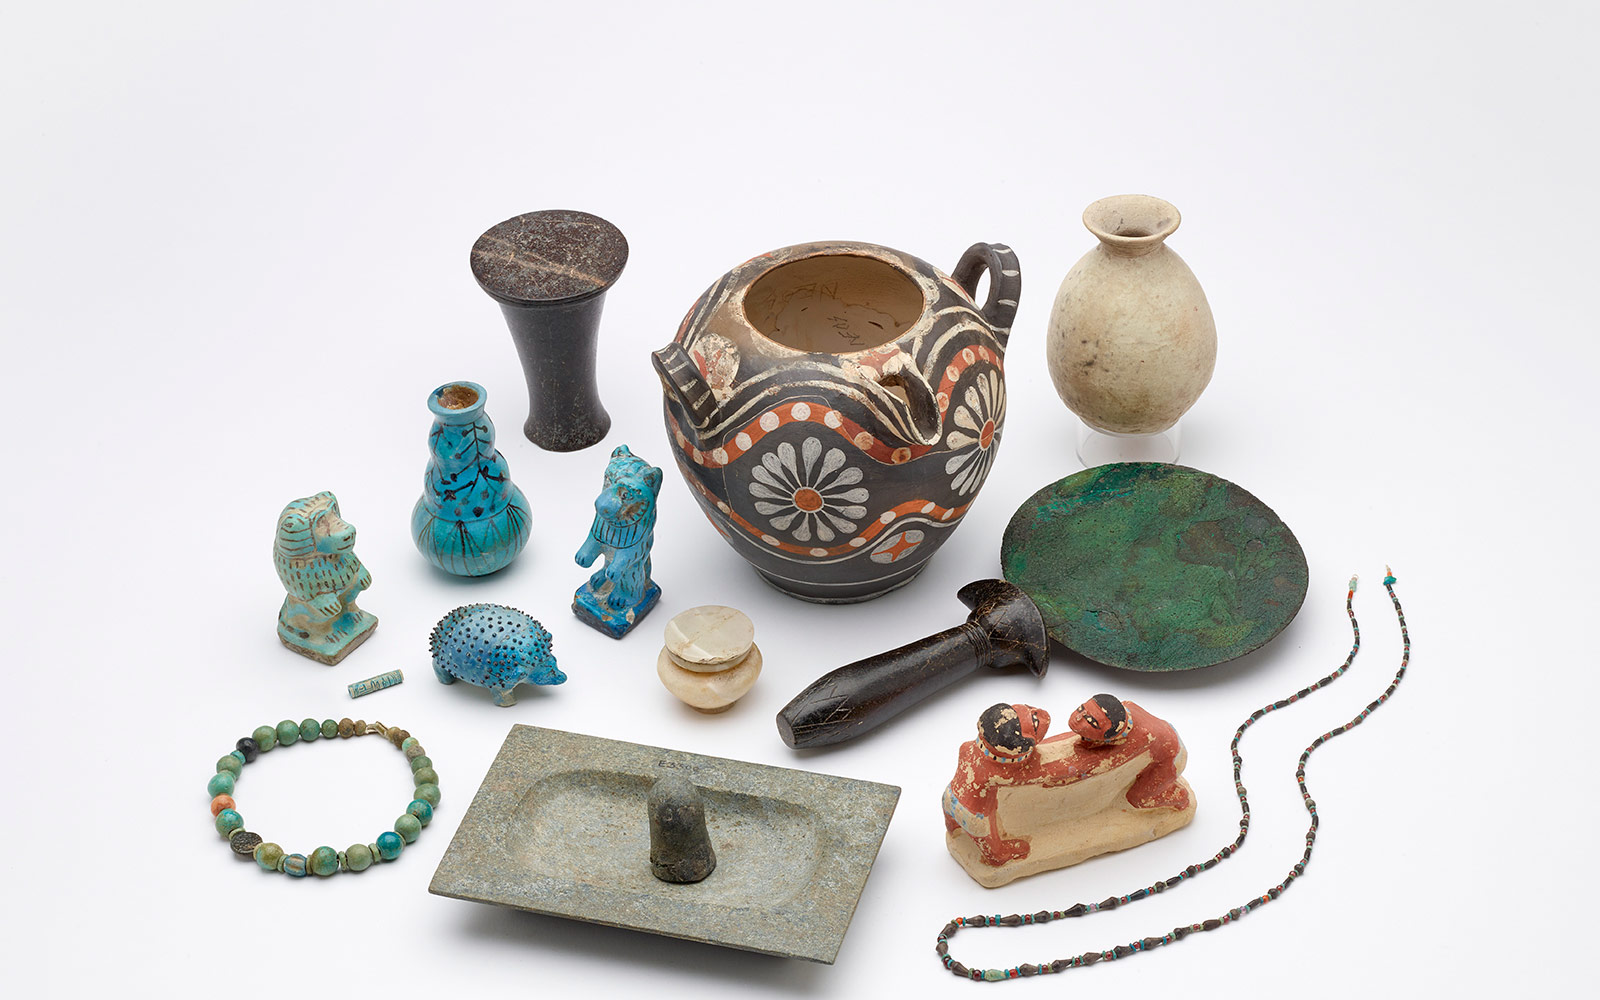 Artifacts from the Beyond The Nile exhibition